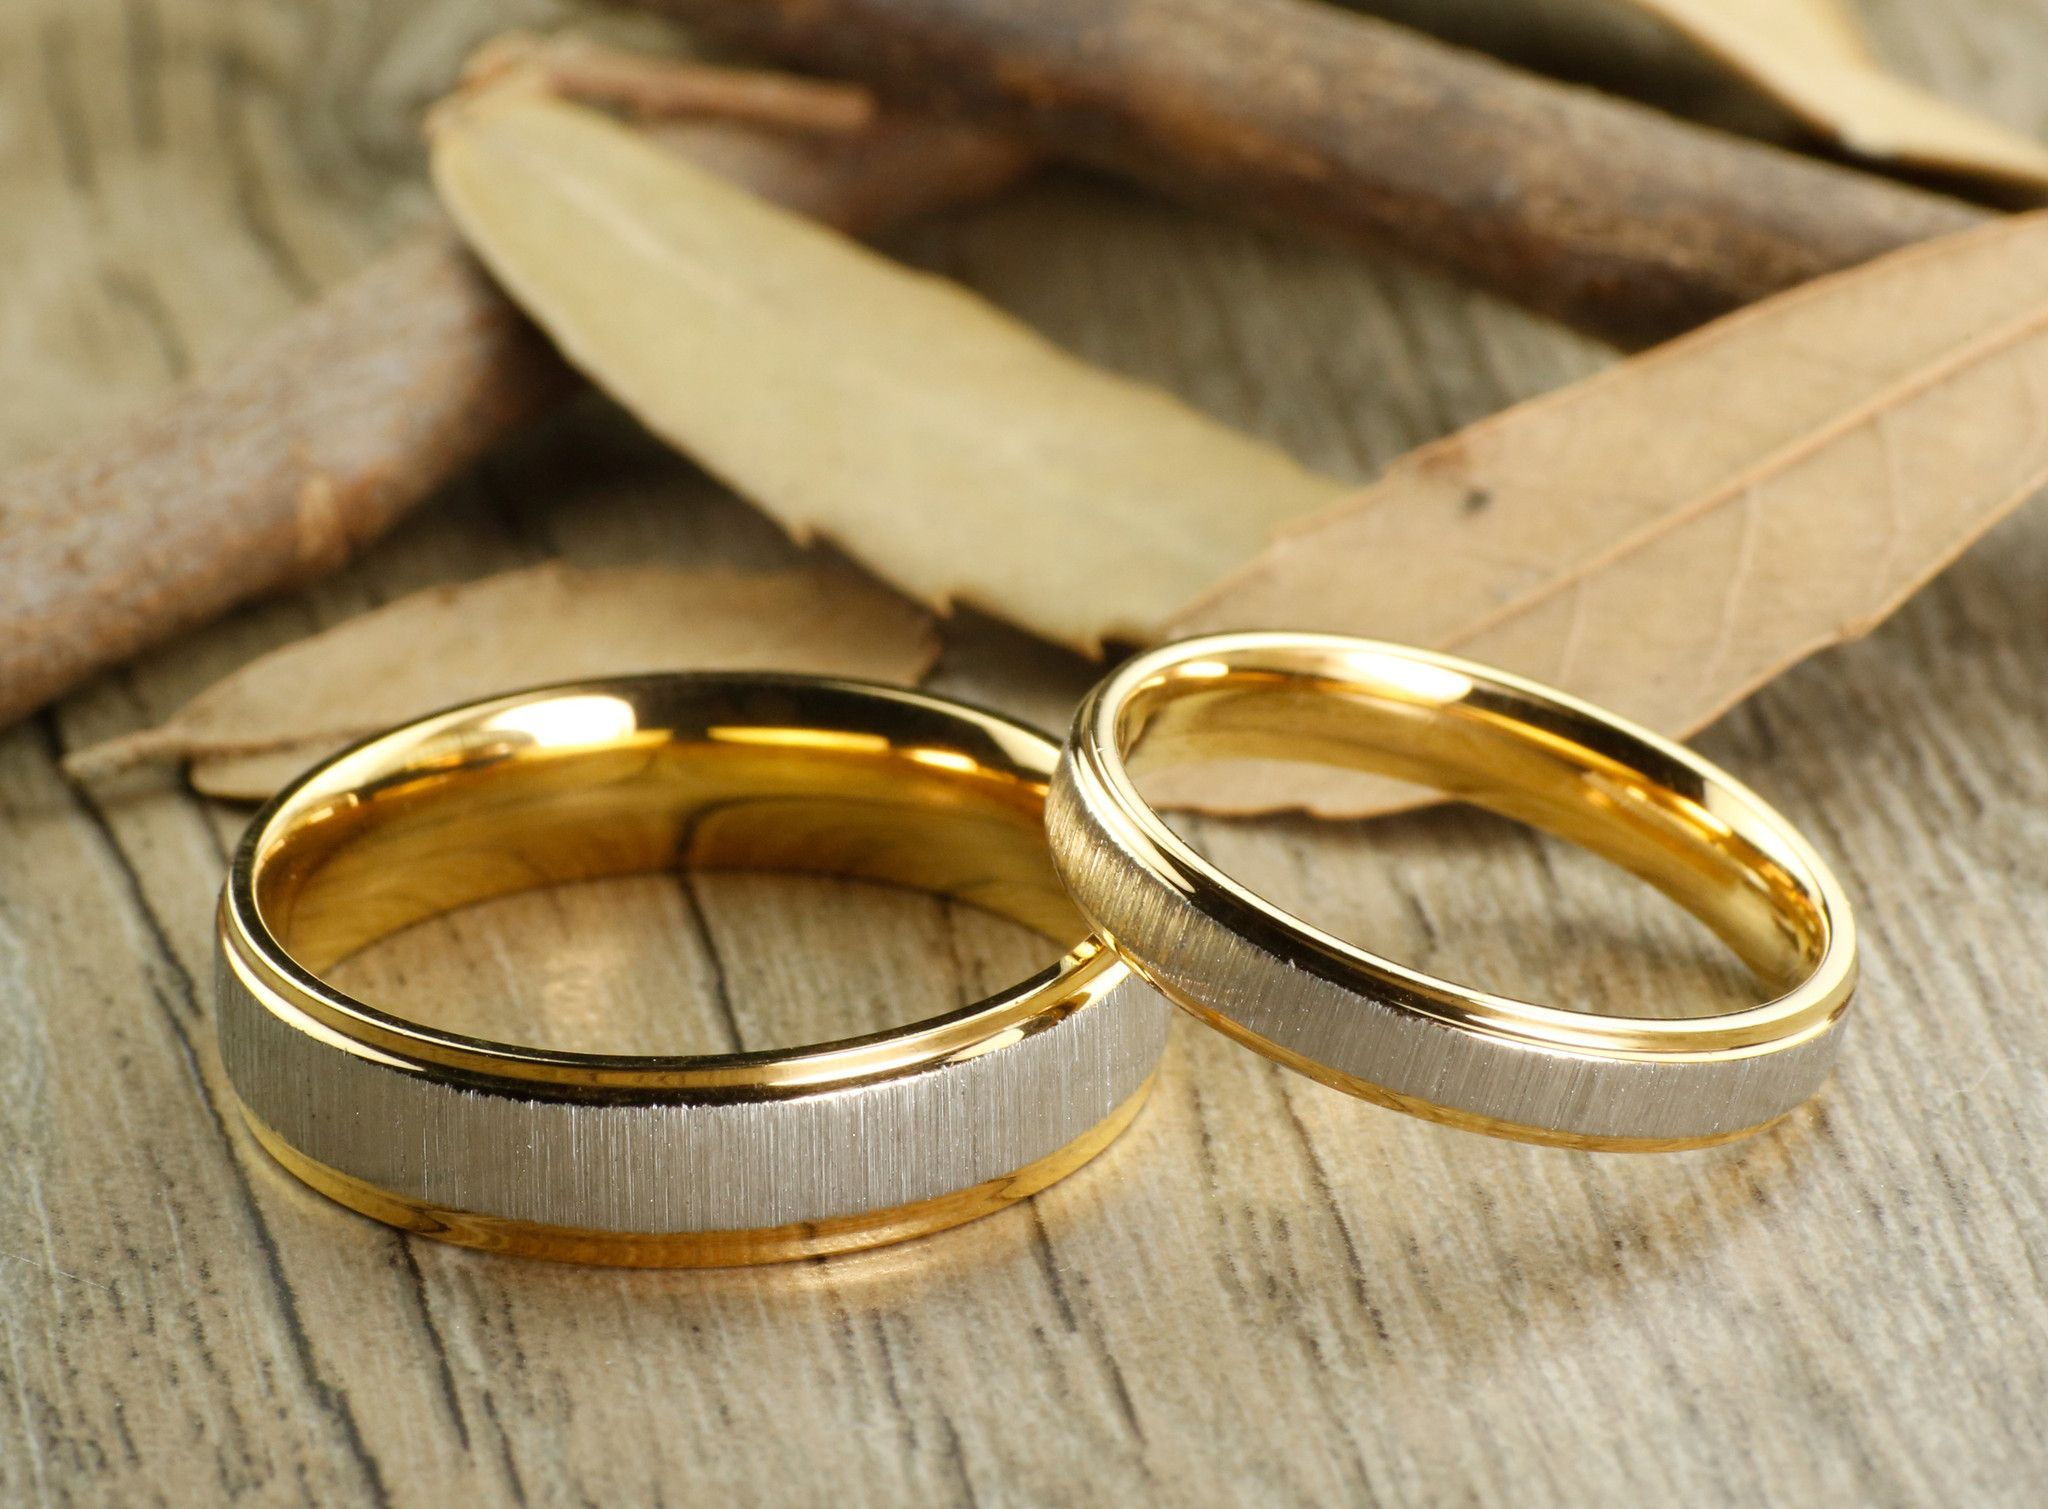 handmade his and her 18k gold wedding titanium rings set - Wedding Rings Sets For Him And Her